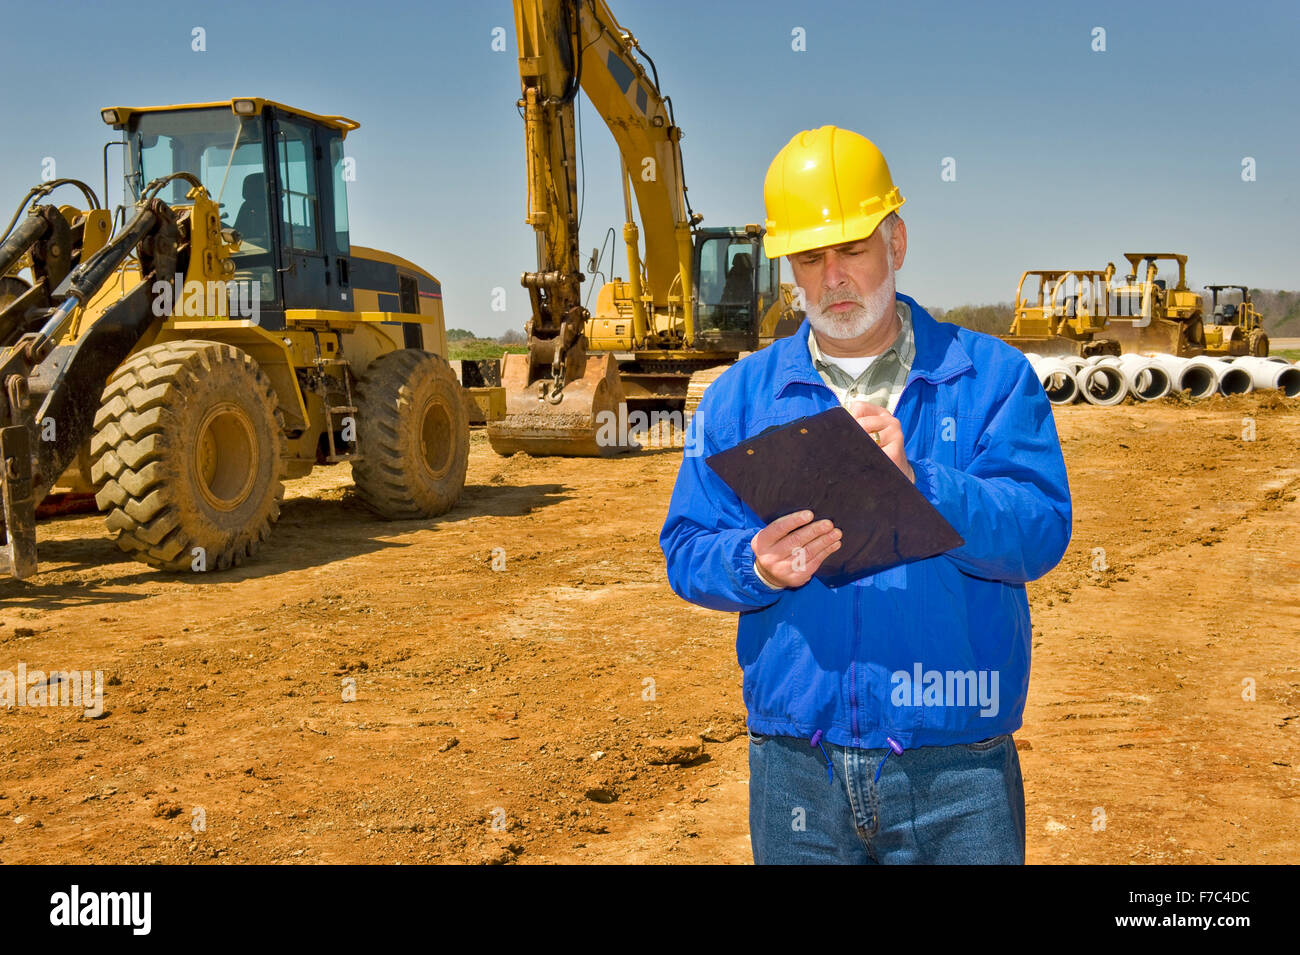 Foreman With Clipboard and Highway Construction Equipment - Stock Image